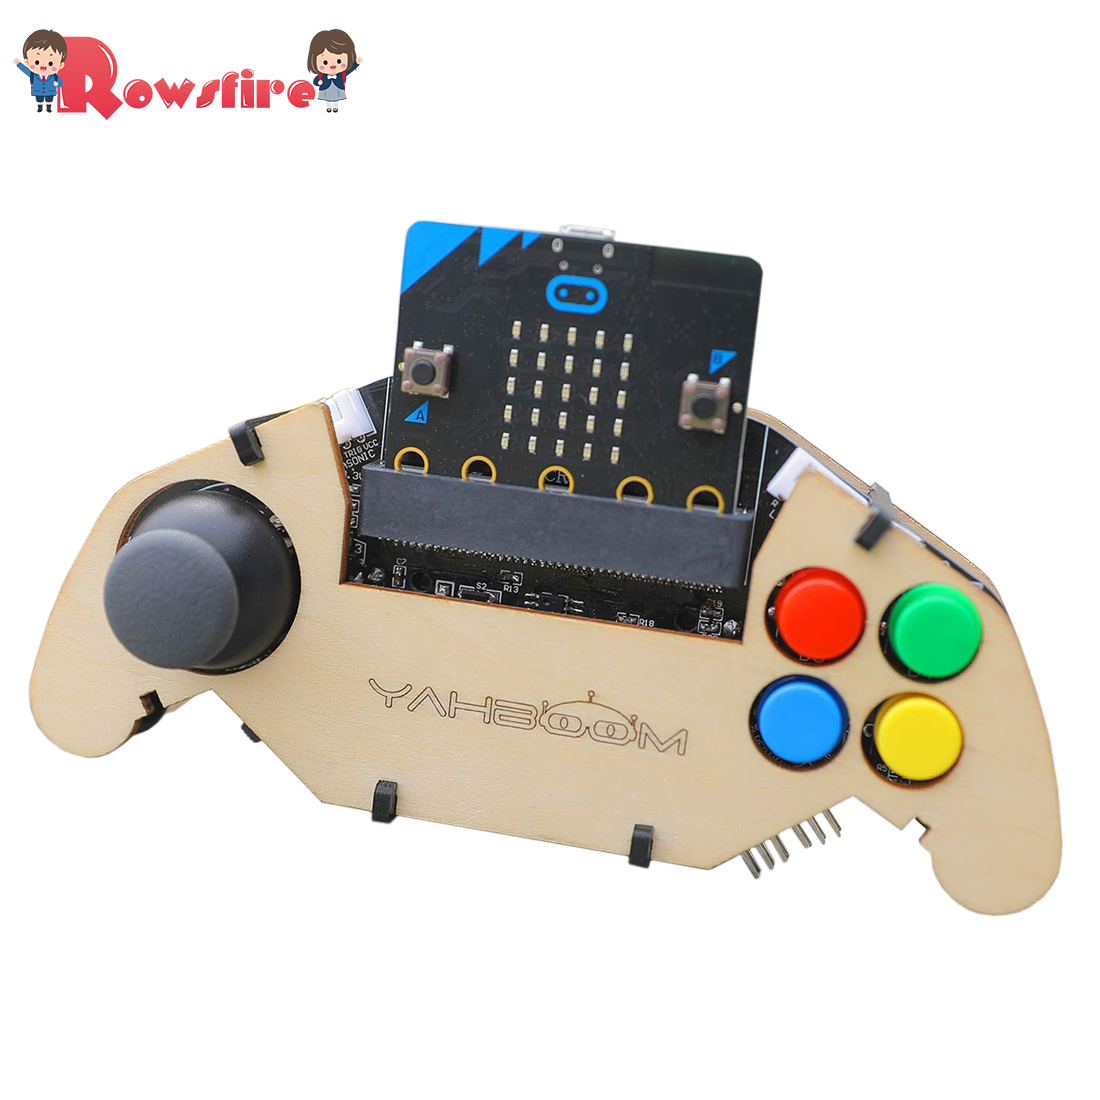 2019 New Hot Micro:Bit Gamepad Expansion Board Handle Microbit Robot Car Joystick STEM Toys Programming Game Controller